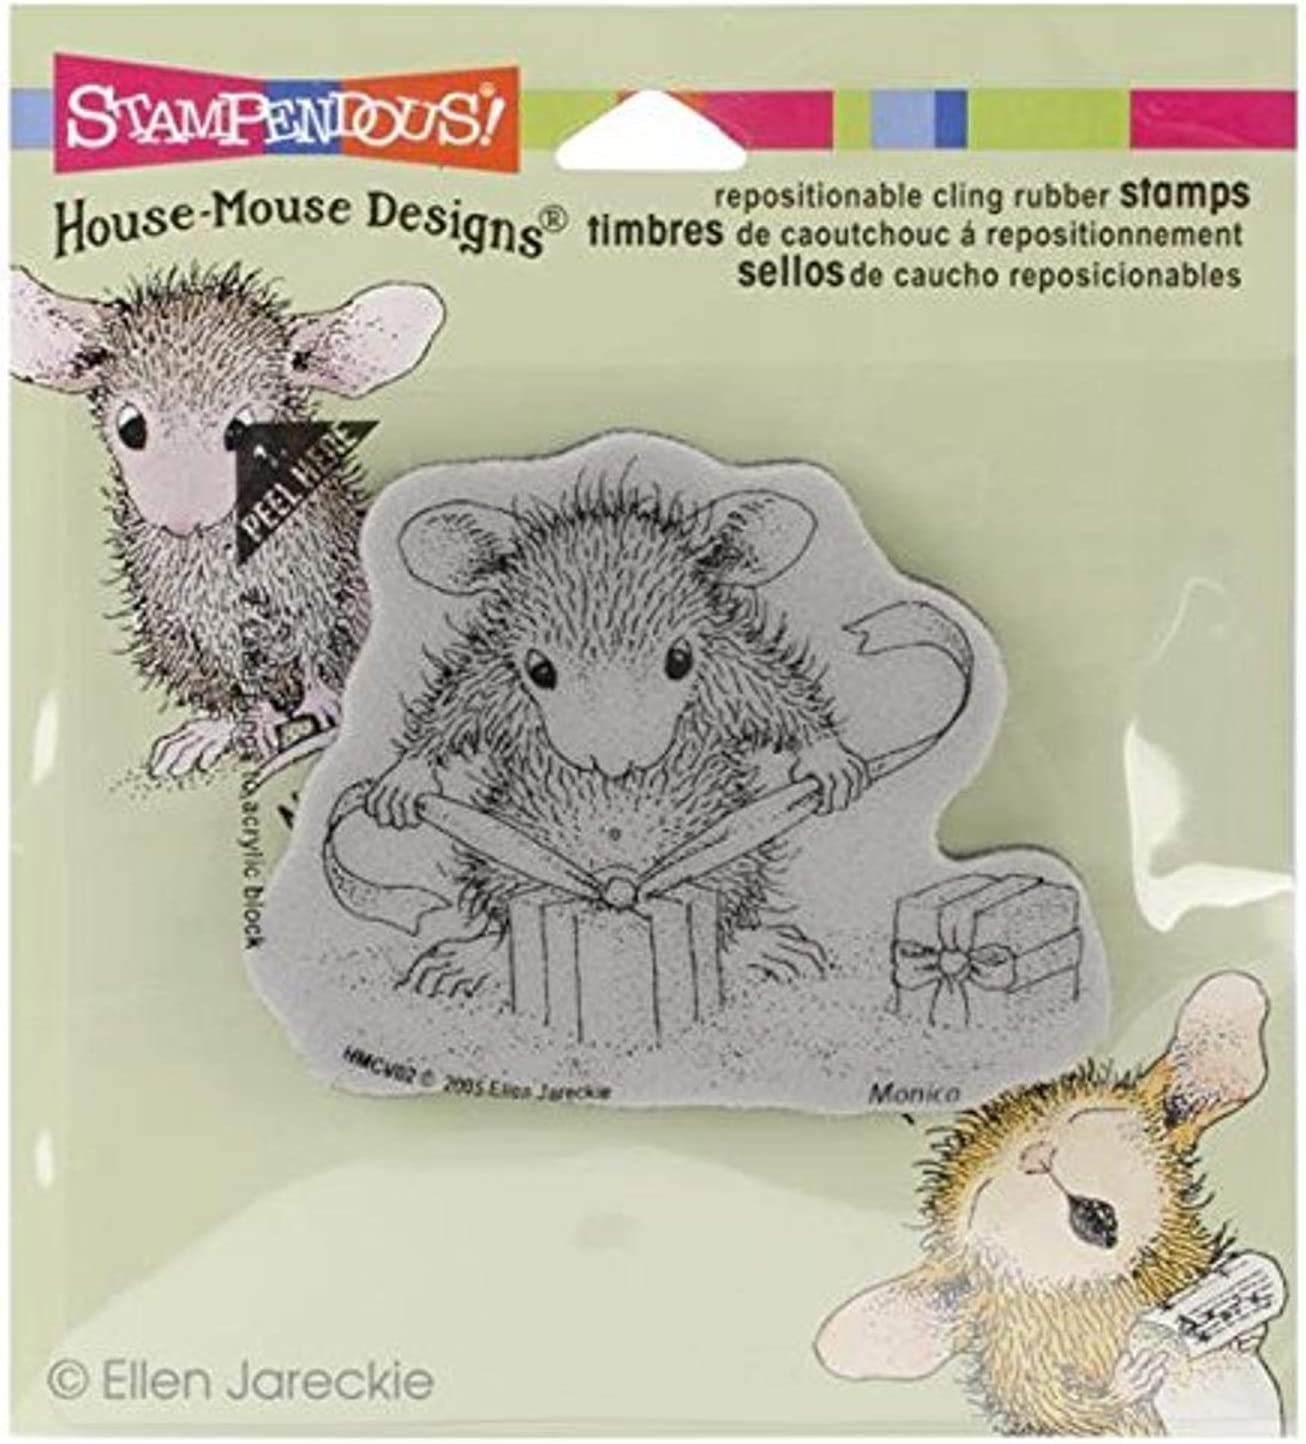 Max 83% OFF Stampendous Cling Rubber Stamp to Tie Gifts Recommendation